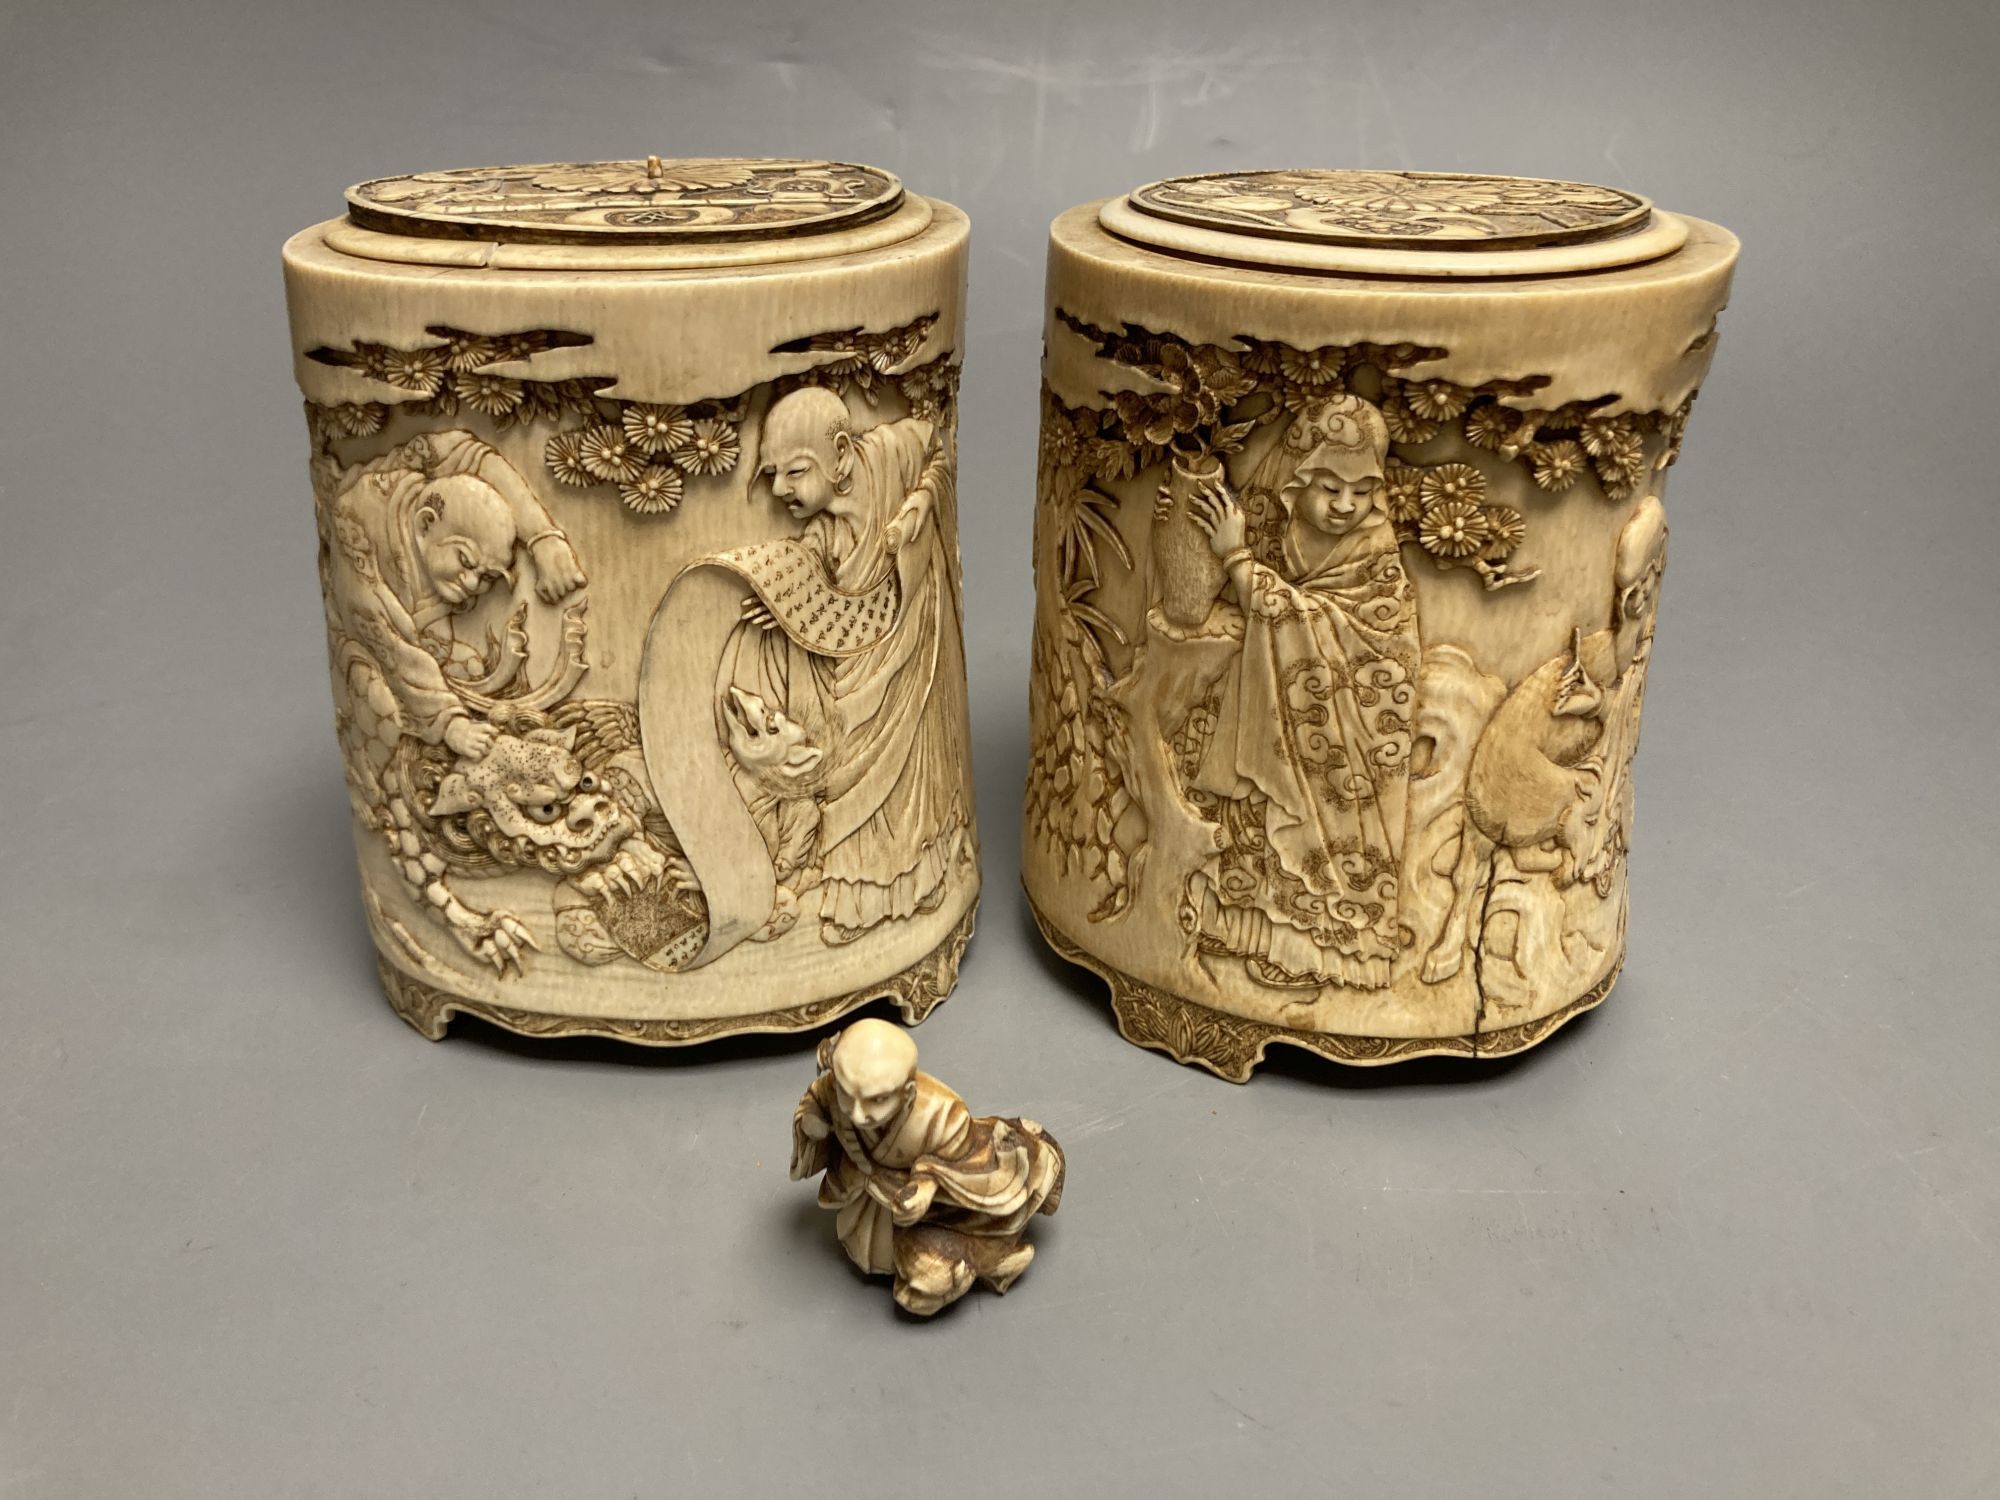 A pair of 19th century Chinese finely carved ivory lidded pots, 12.5cm high and Japanese